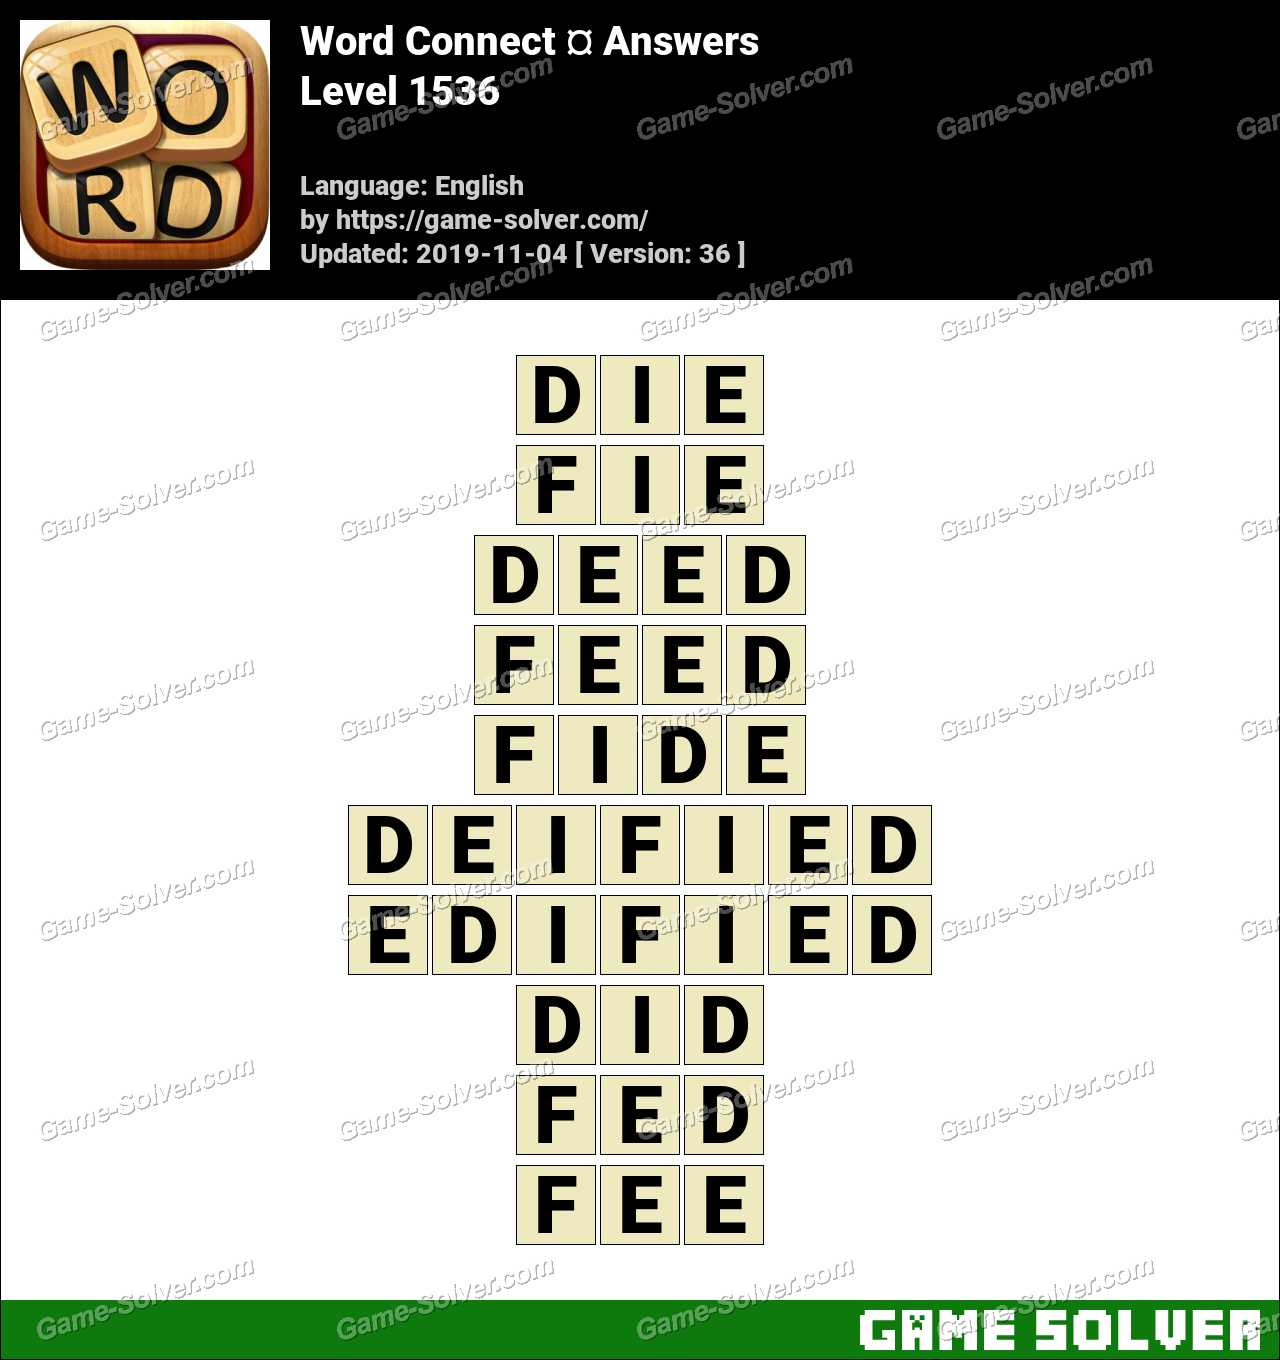 Word Connect Level 1536 Answers